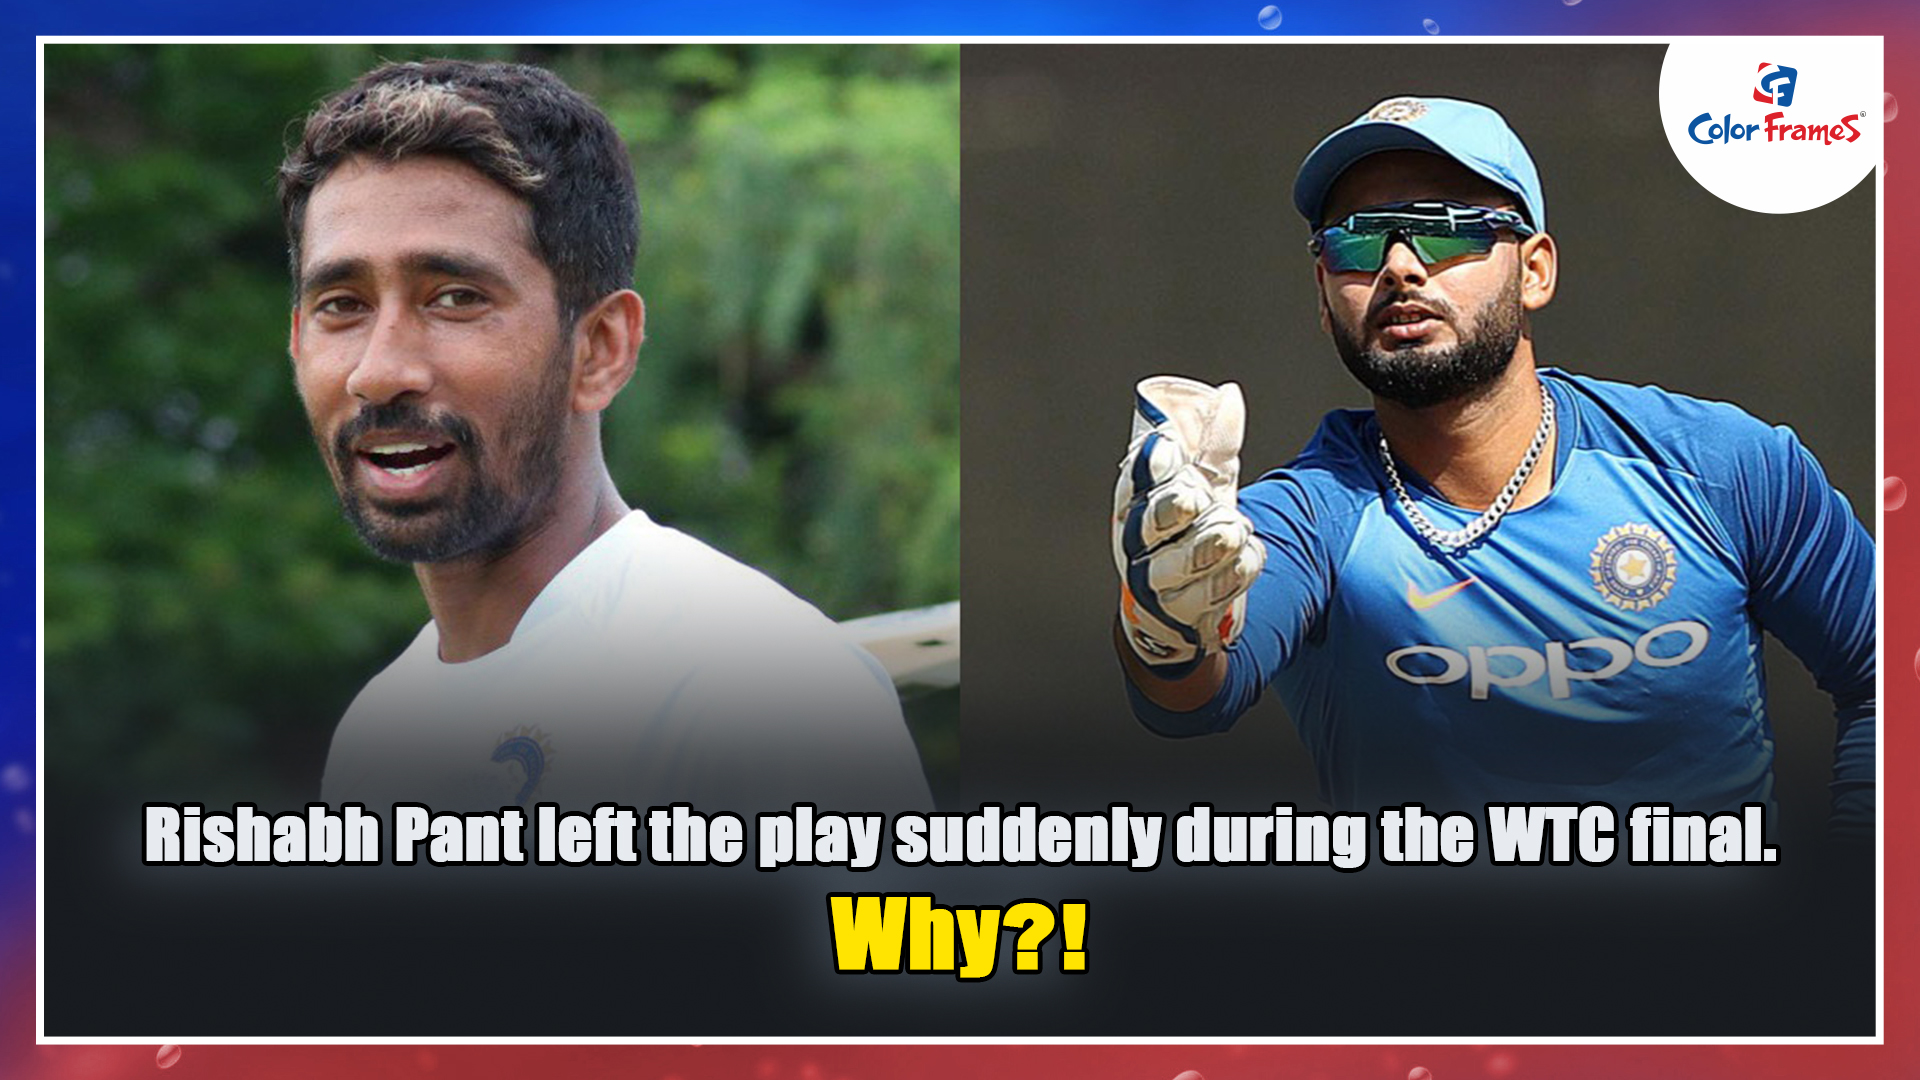 Rishabh Pant left the play suddenly during the WTC final. Why?!